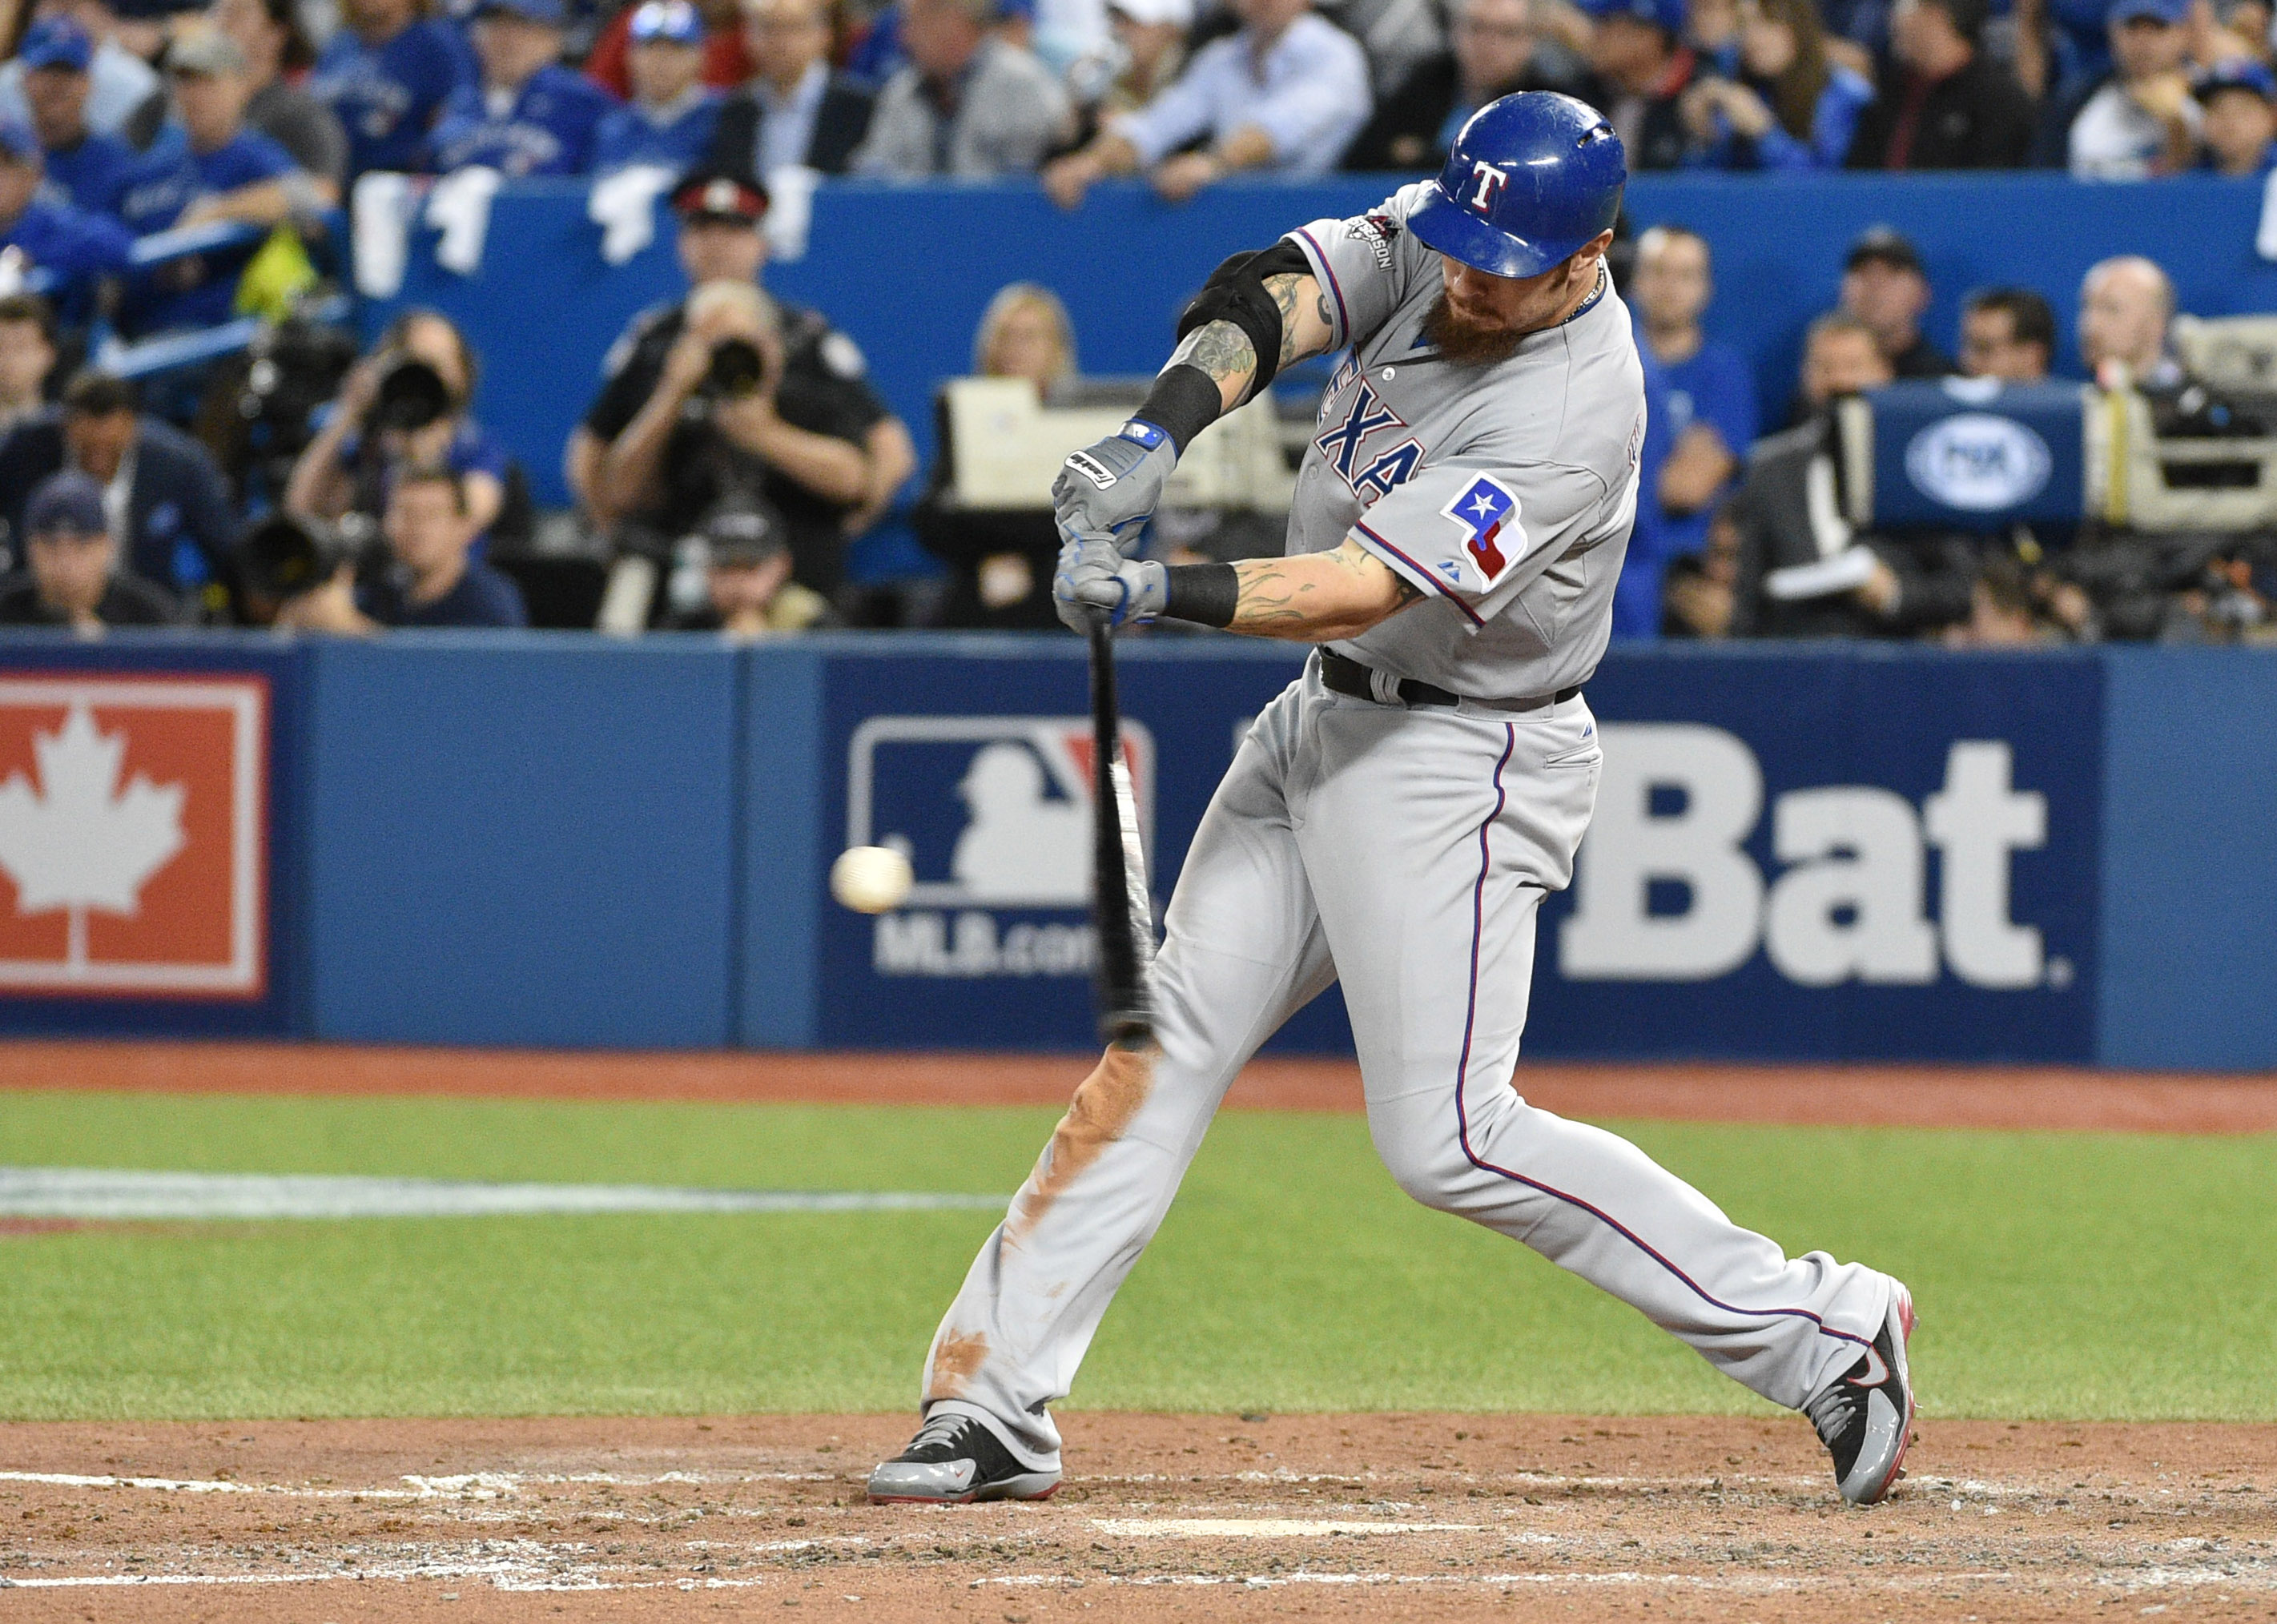 8861752-mlb-alds-texas-rangers-at-toronto-blue-jays